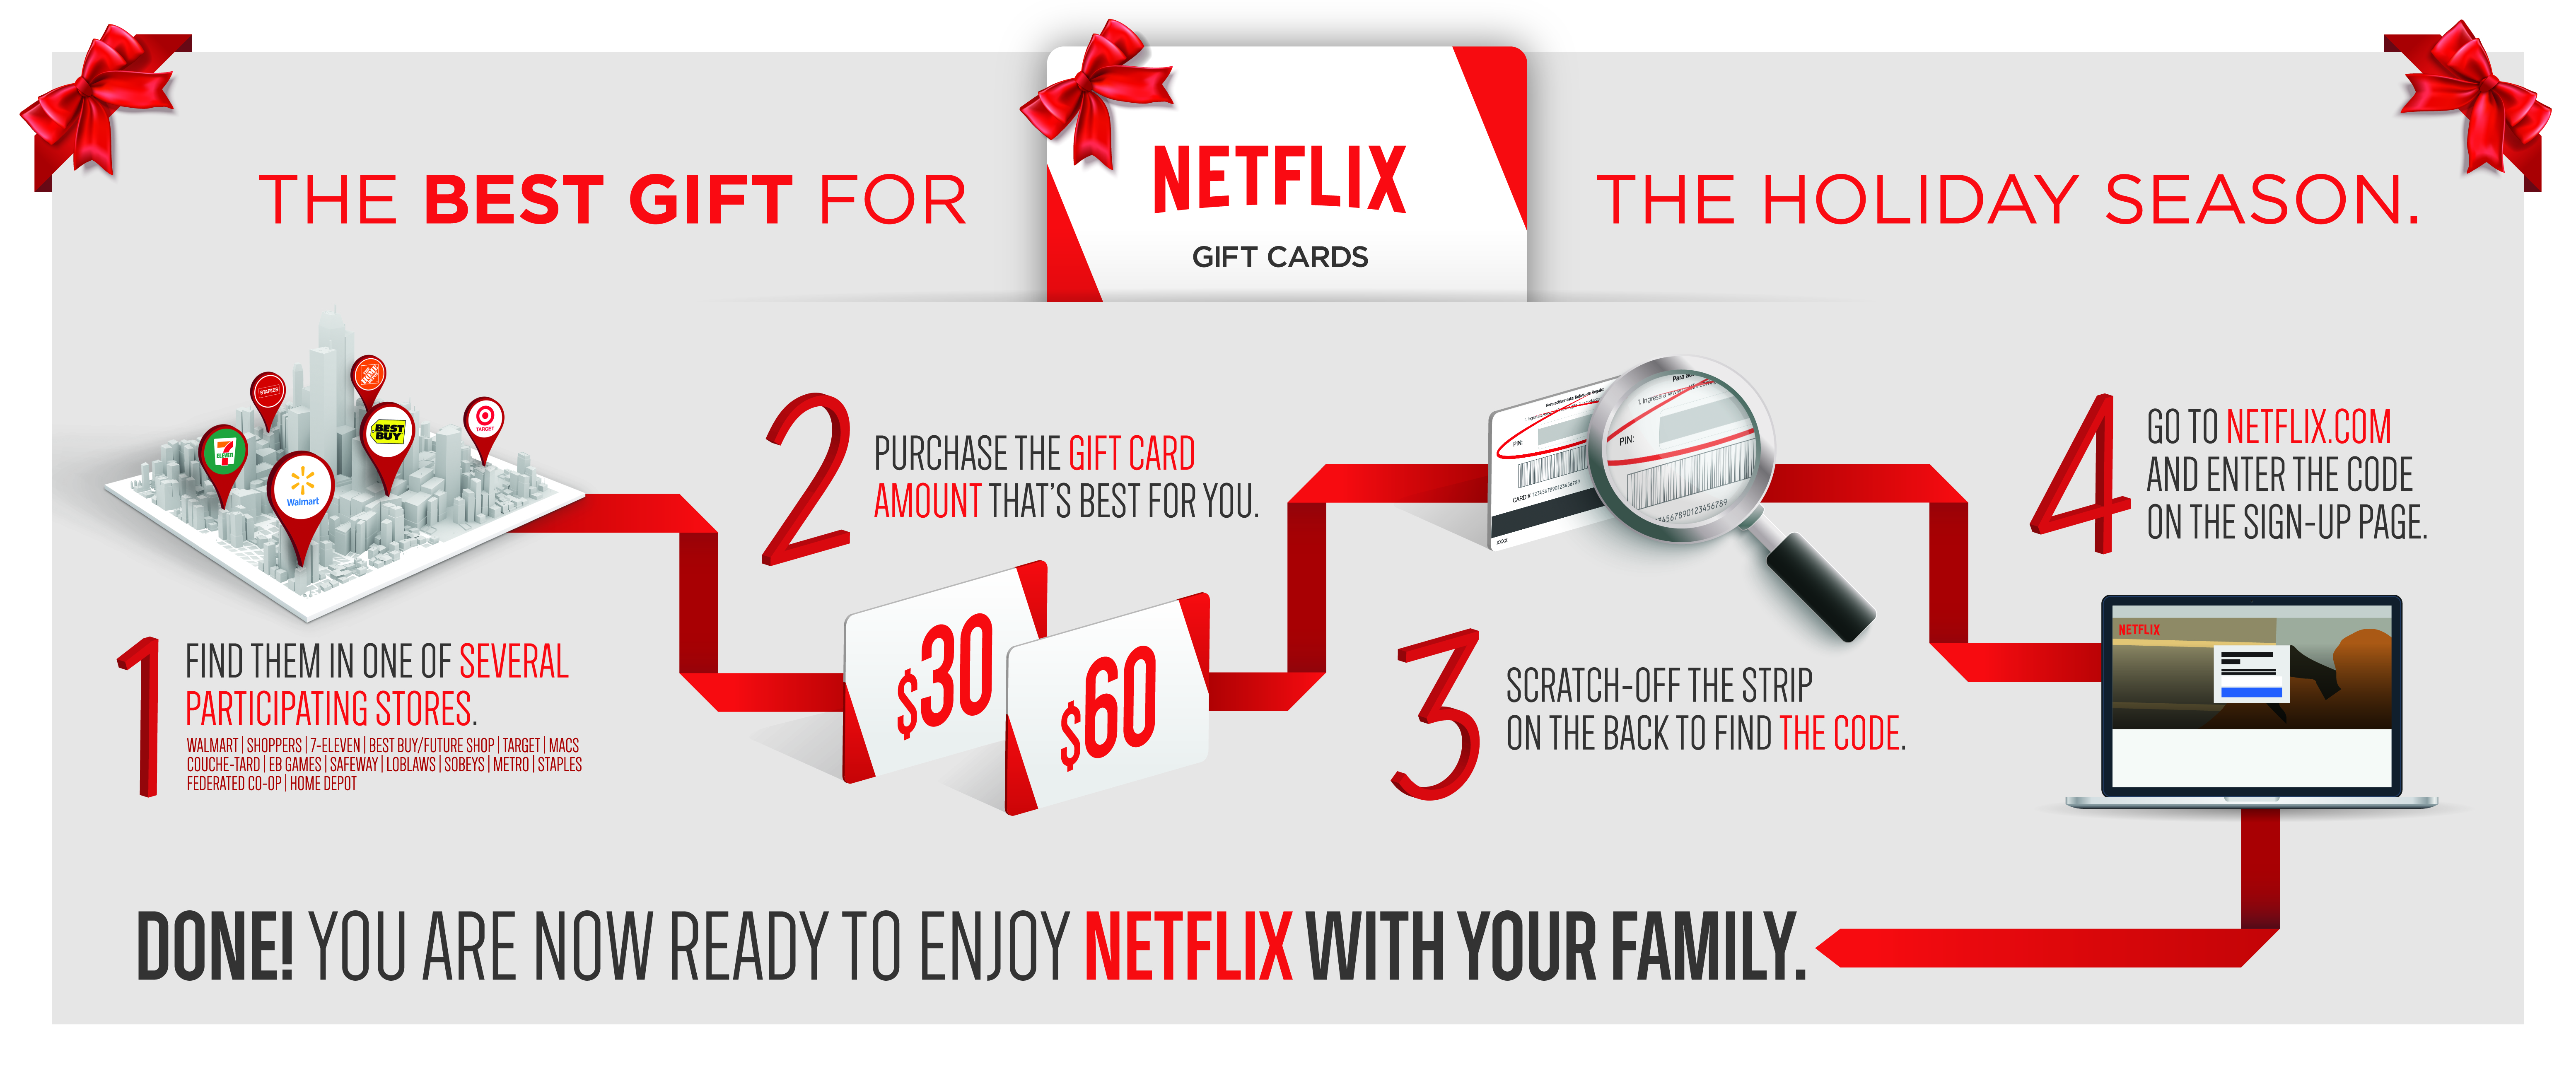 how to join american netflix in canada